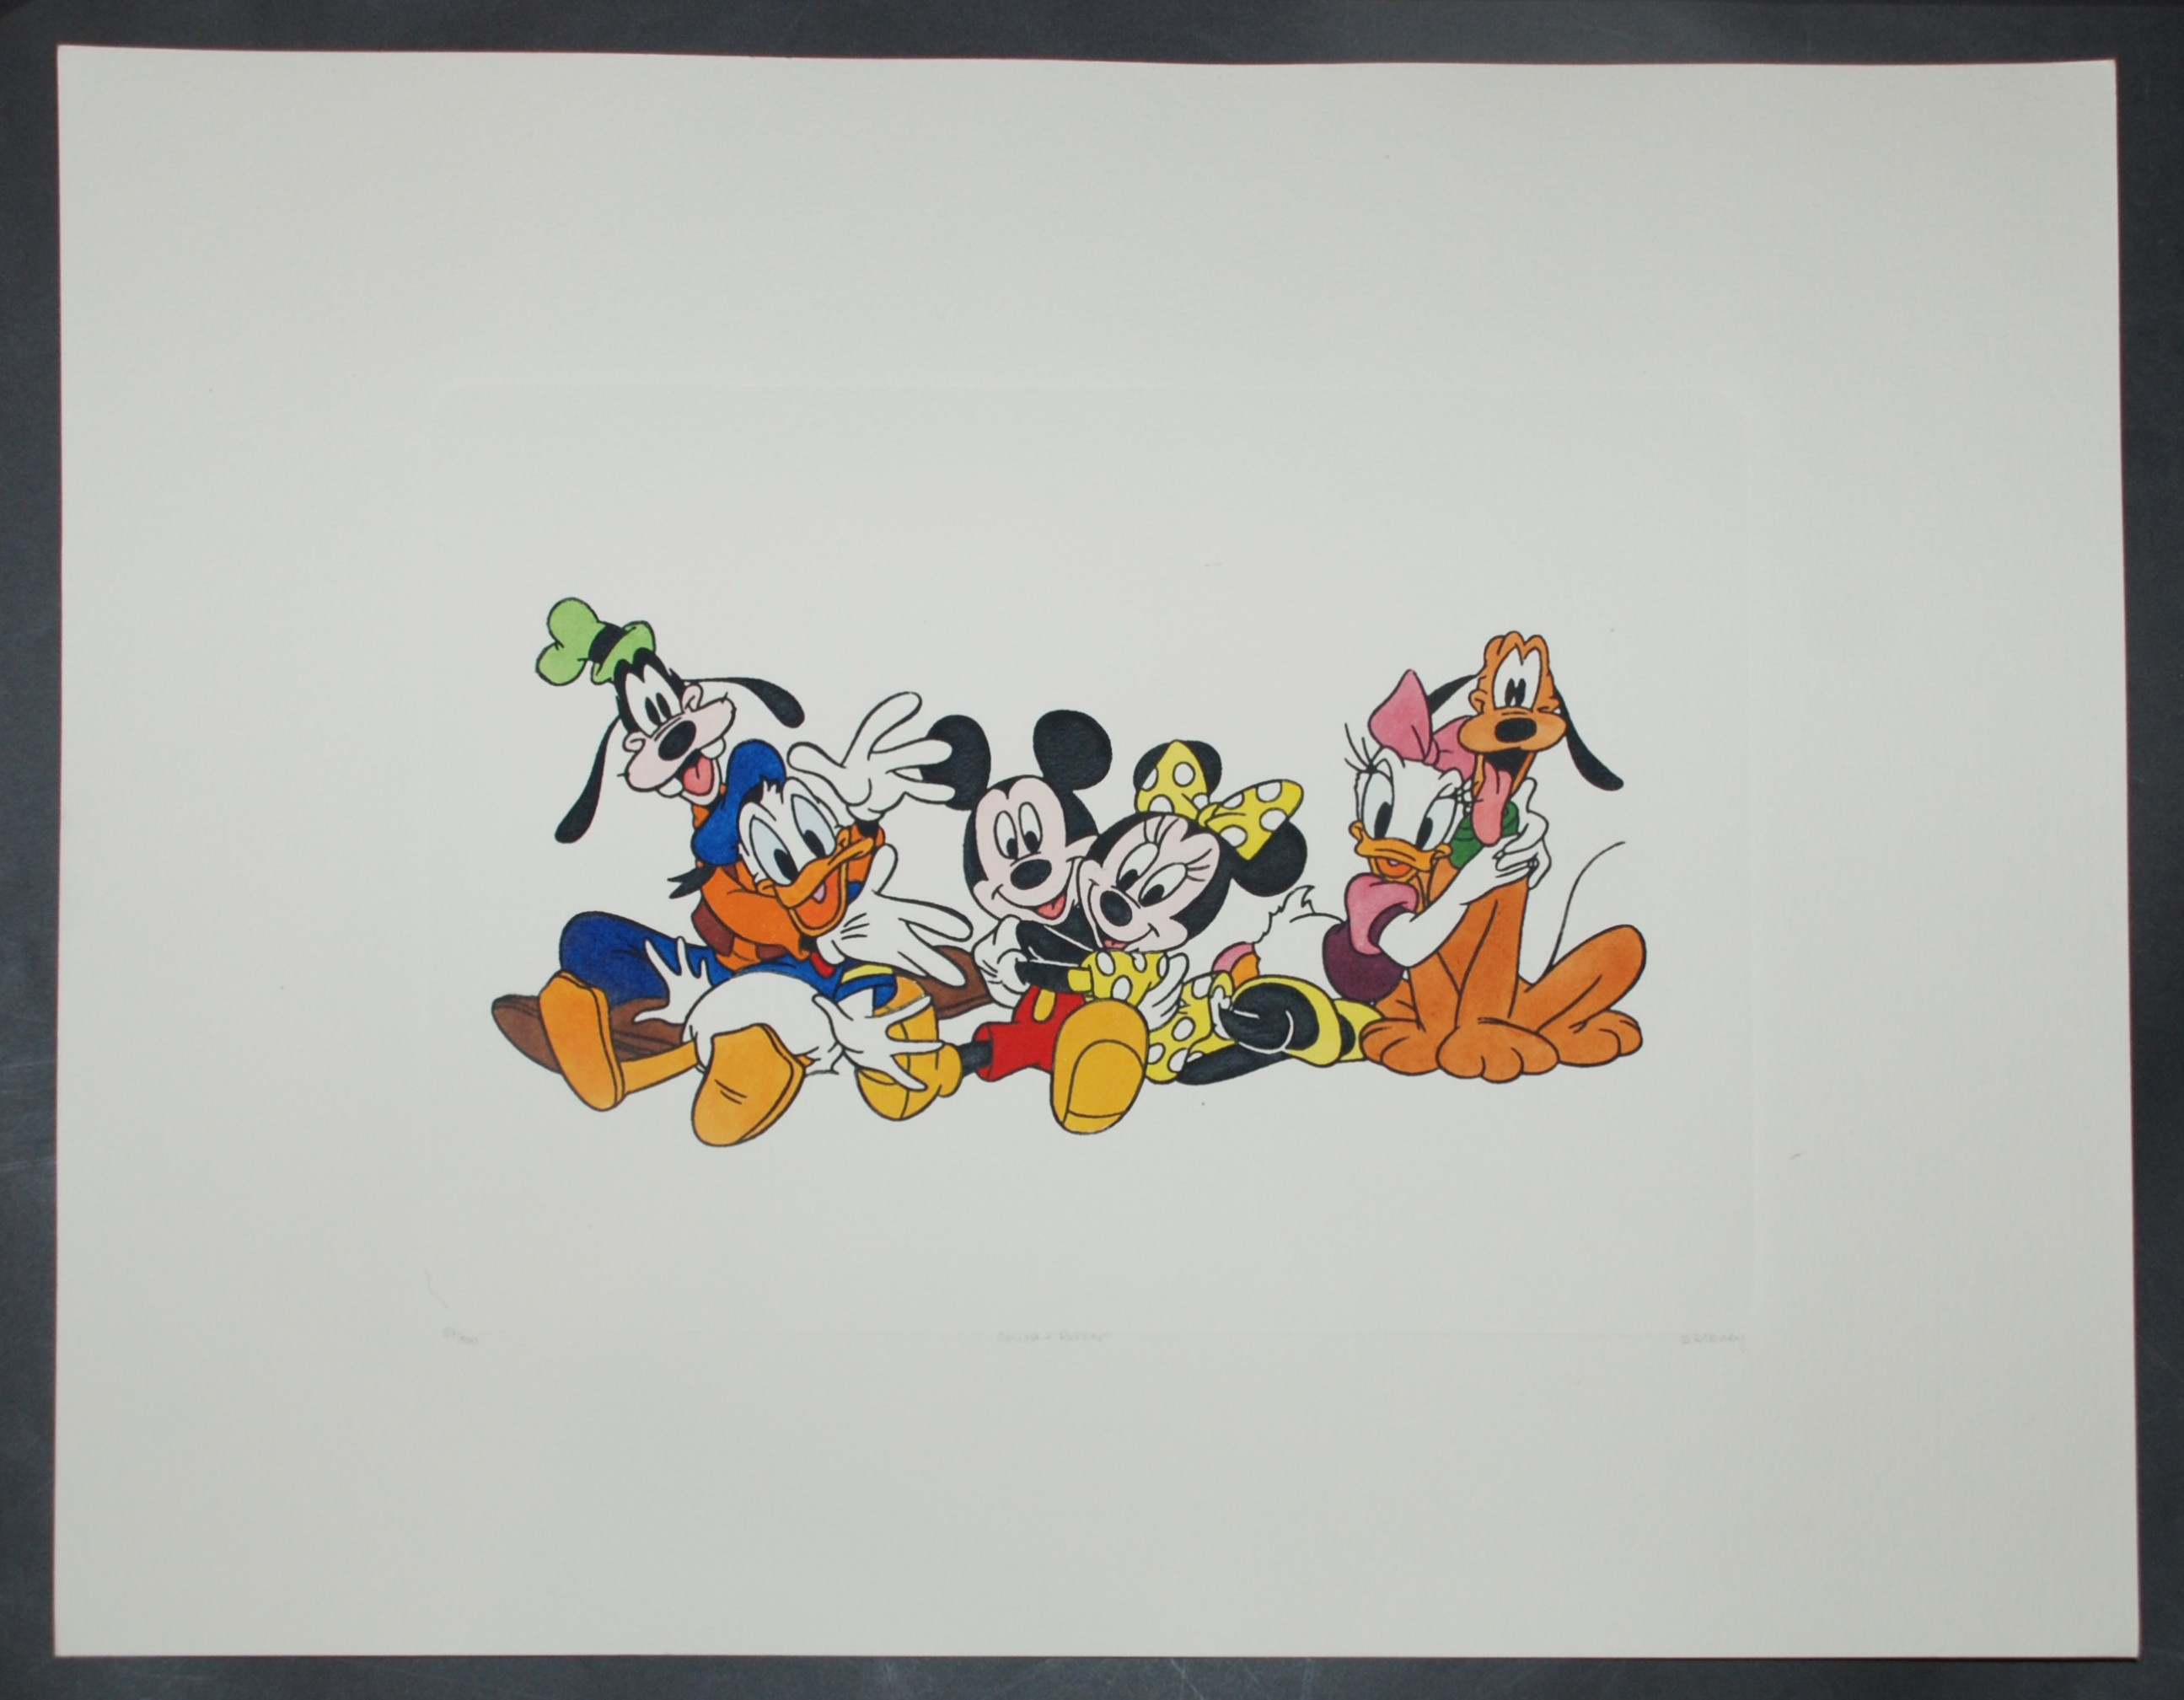 Disney Animation Art Hand Colored Etching Featuring Mickey Mouse And Friends